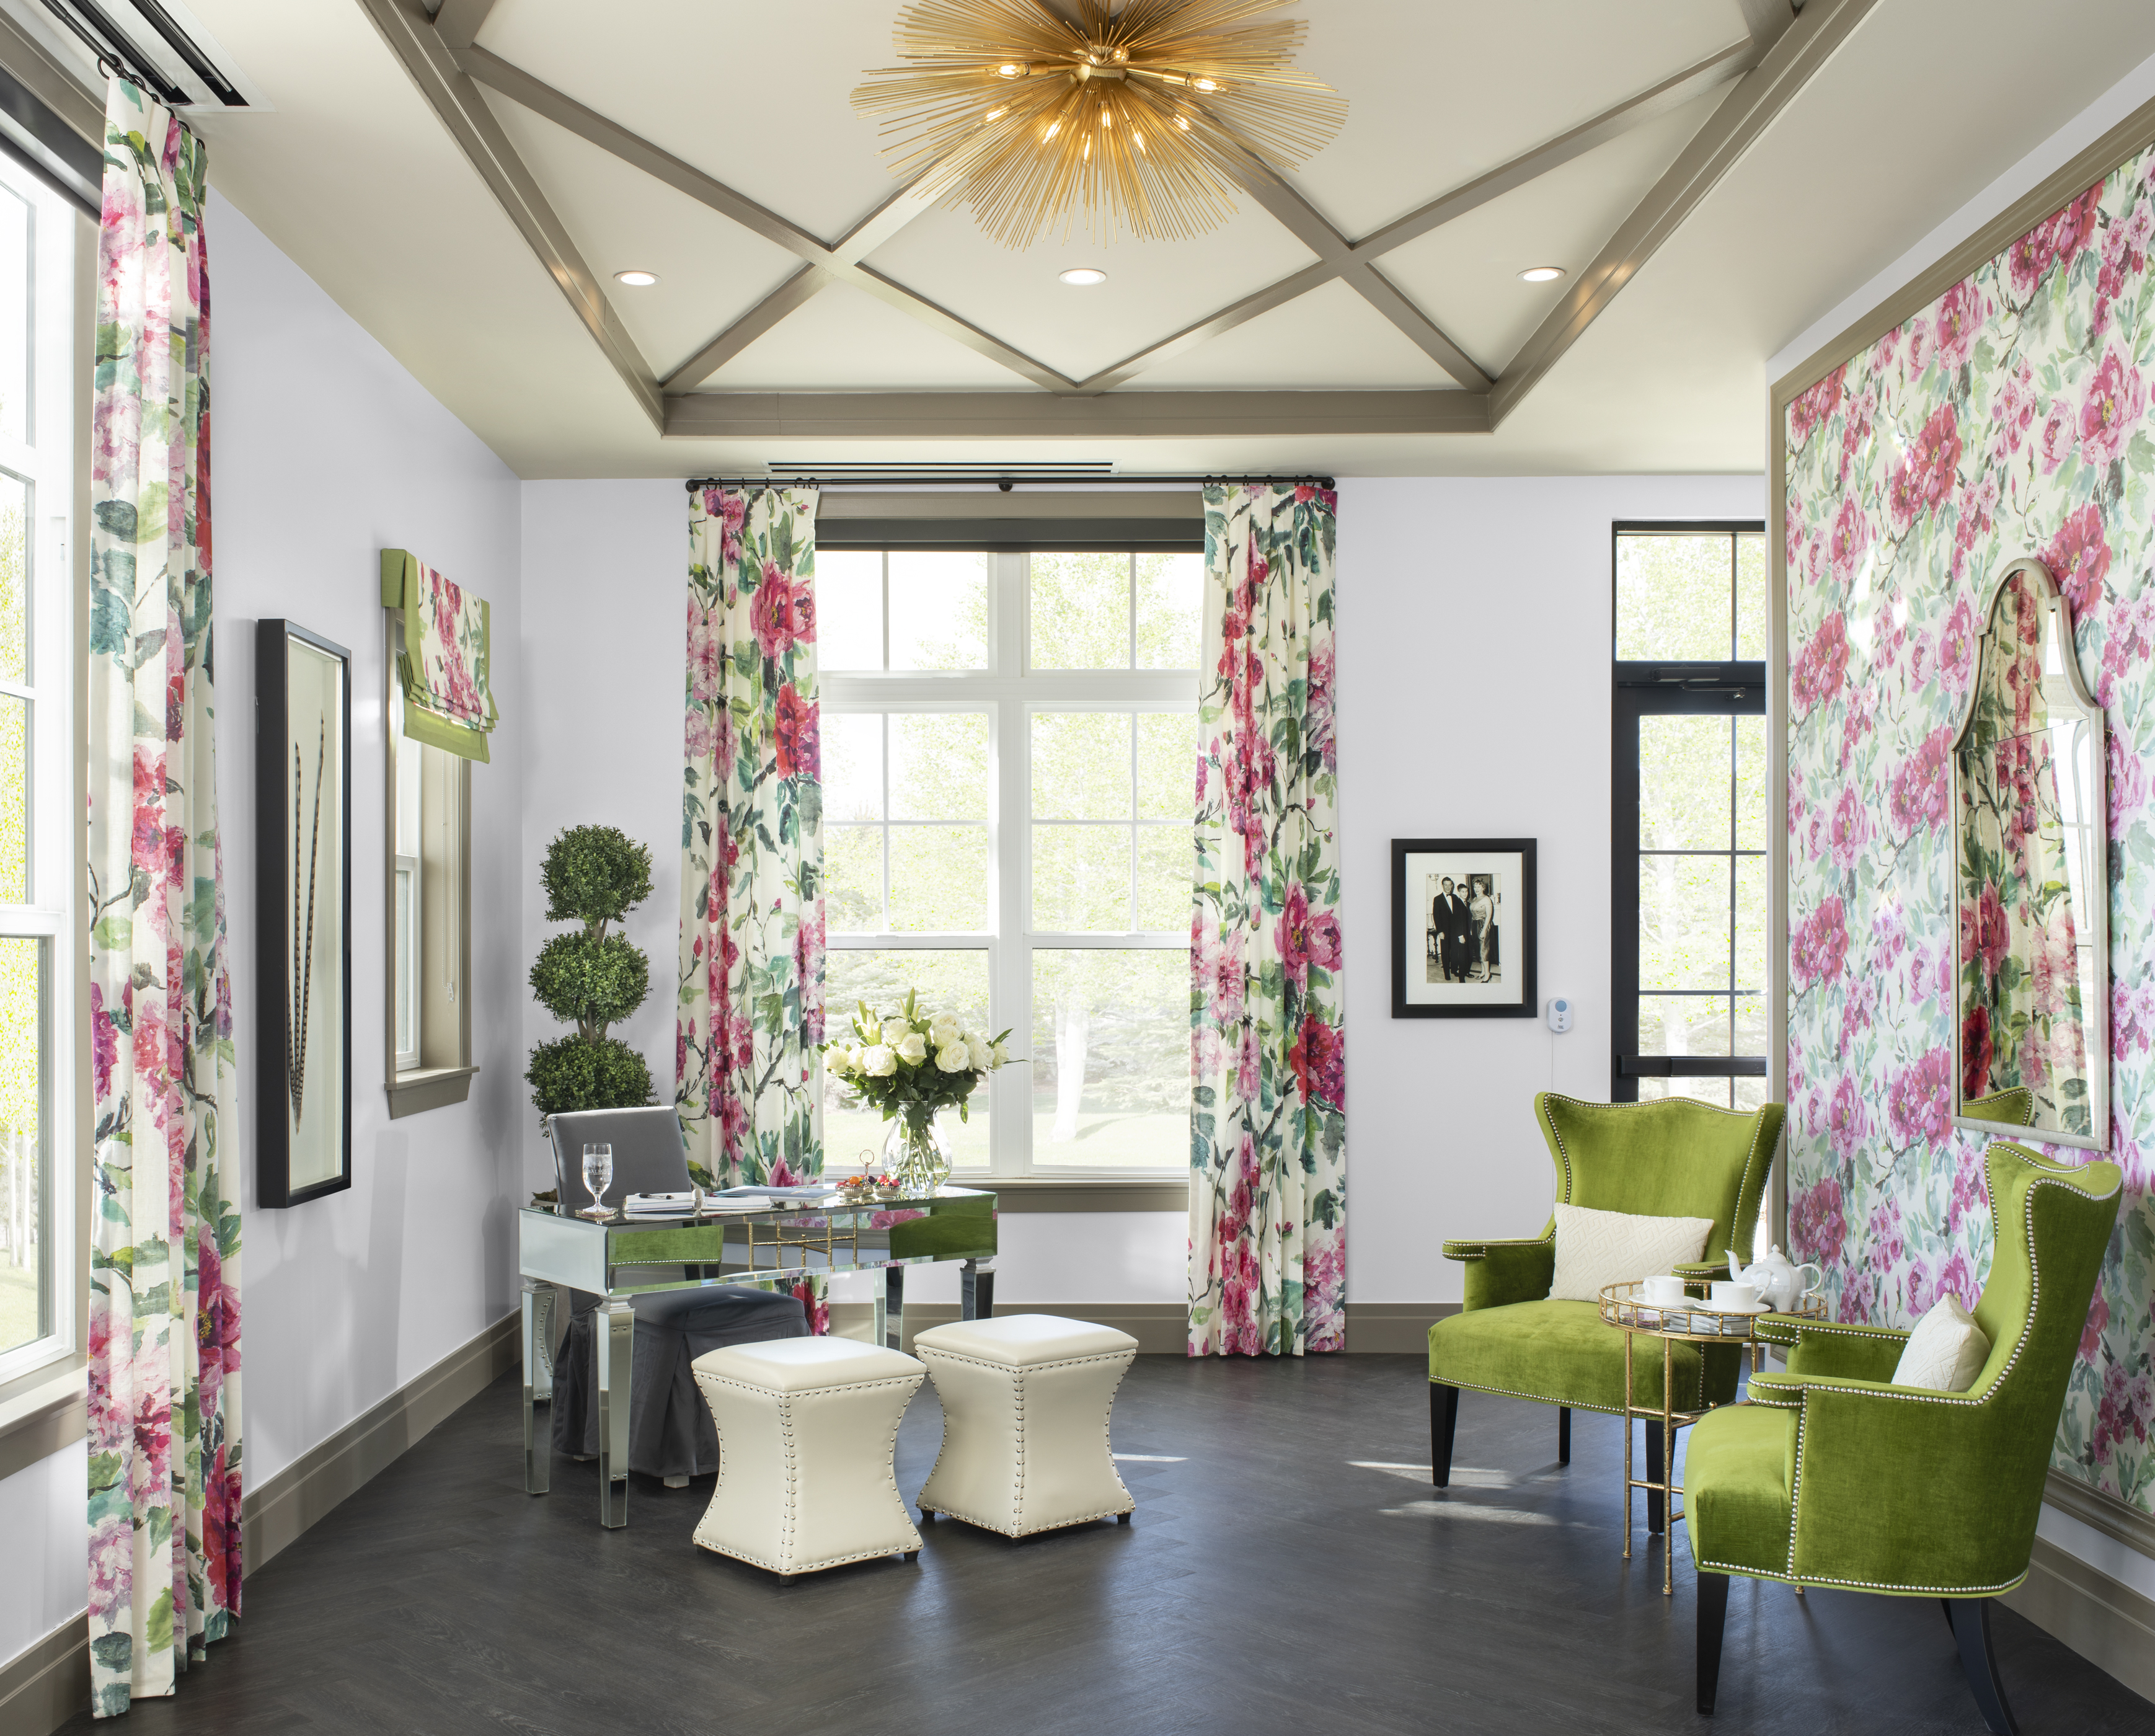 Colorful floral interiors